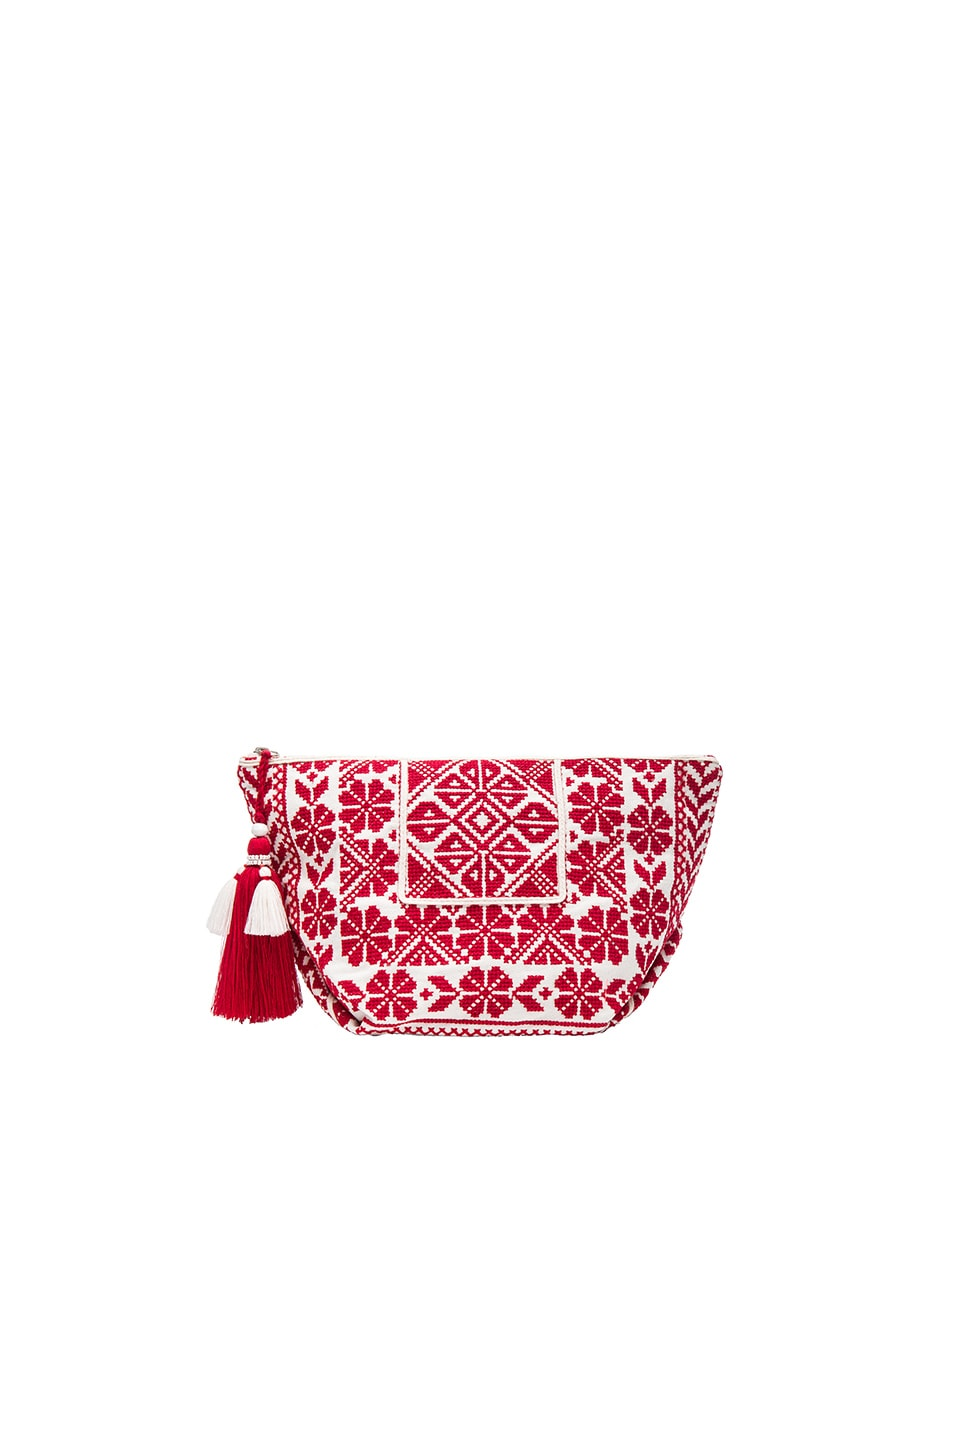 Star Mela Saga Purse in Ecru & Red